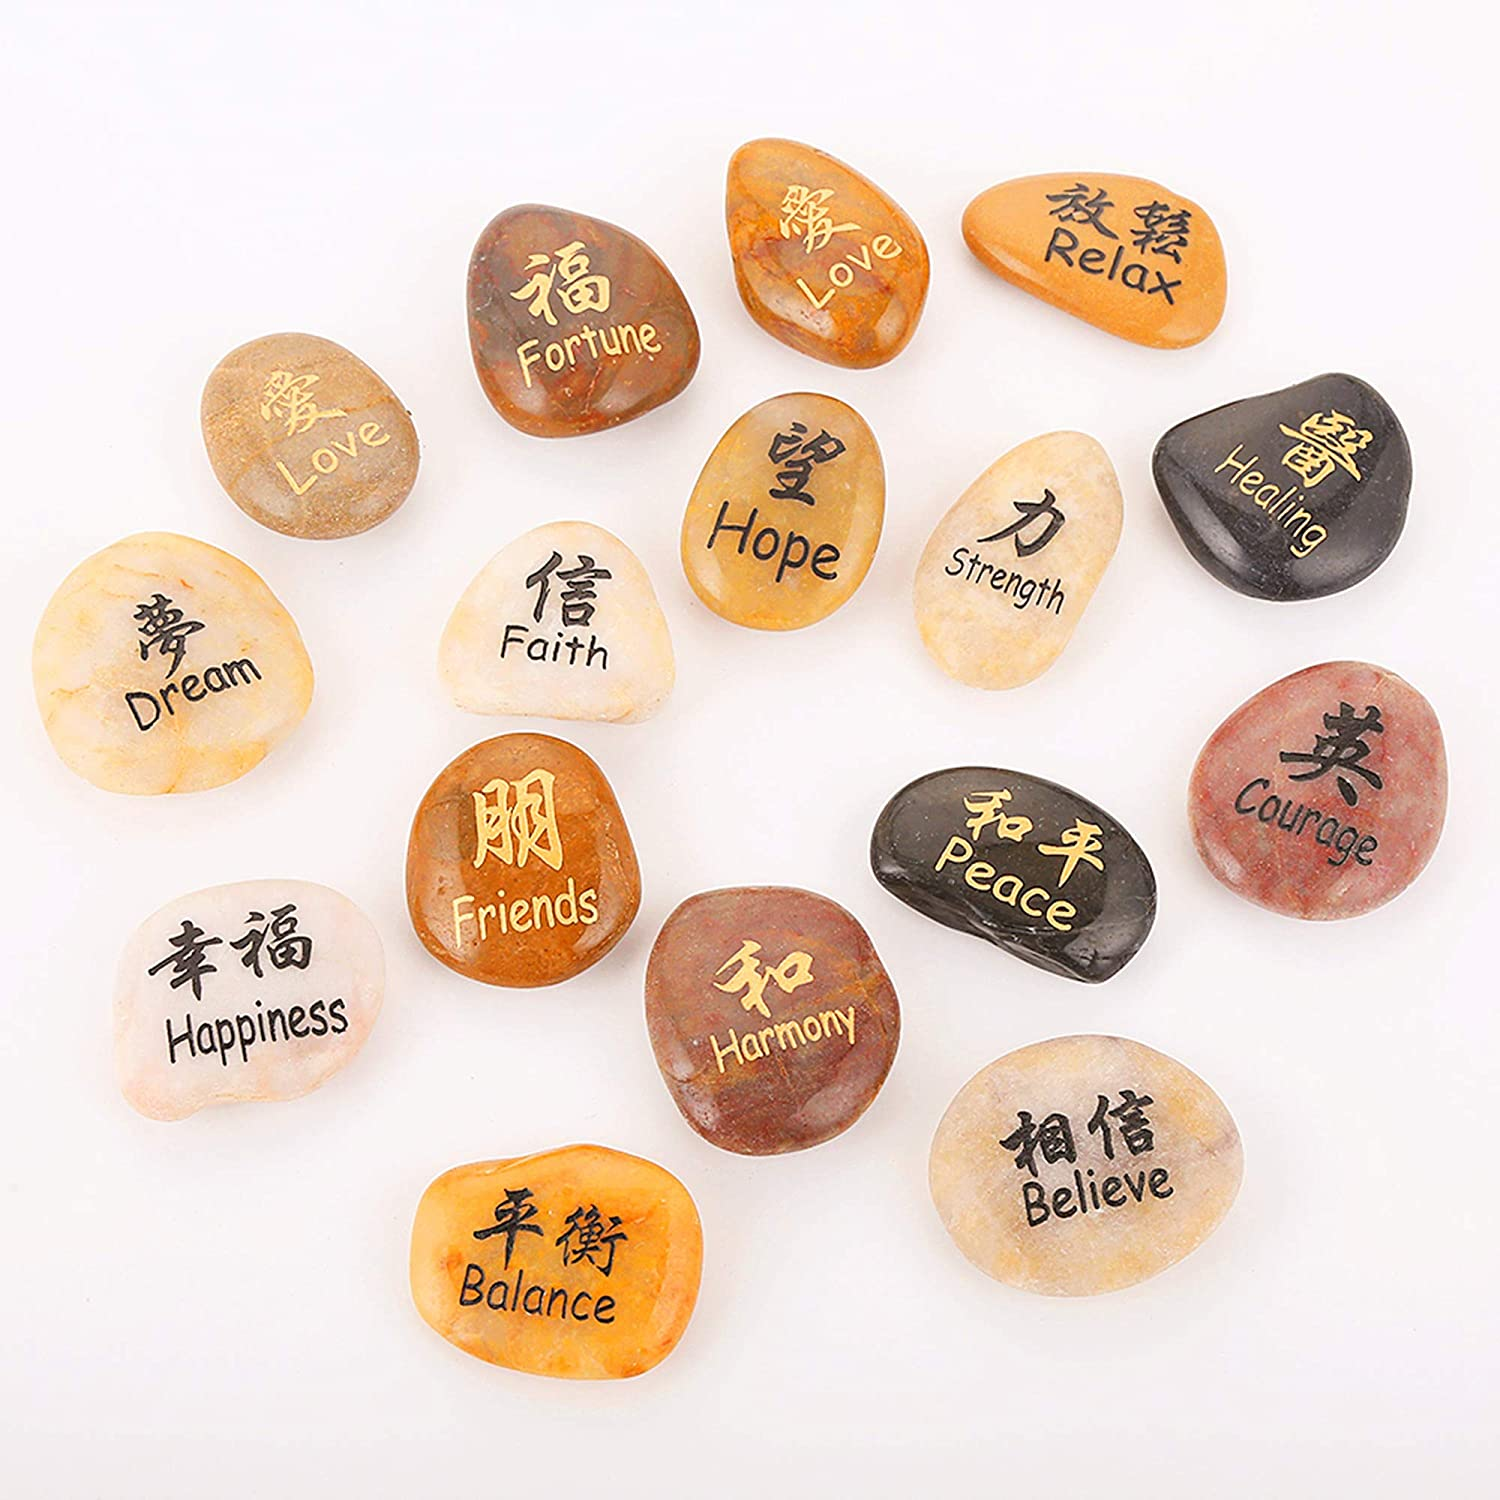 ROCKIMPACT 16PCS Kanji Symbol Engraved Stones Japanese Chinese Han Hanja Characters Feng Shui Zen Stone Polished Natural Beach Pebble (Set of 16, Super Value Variety Pack)